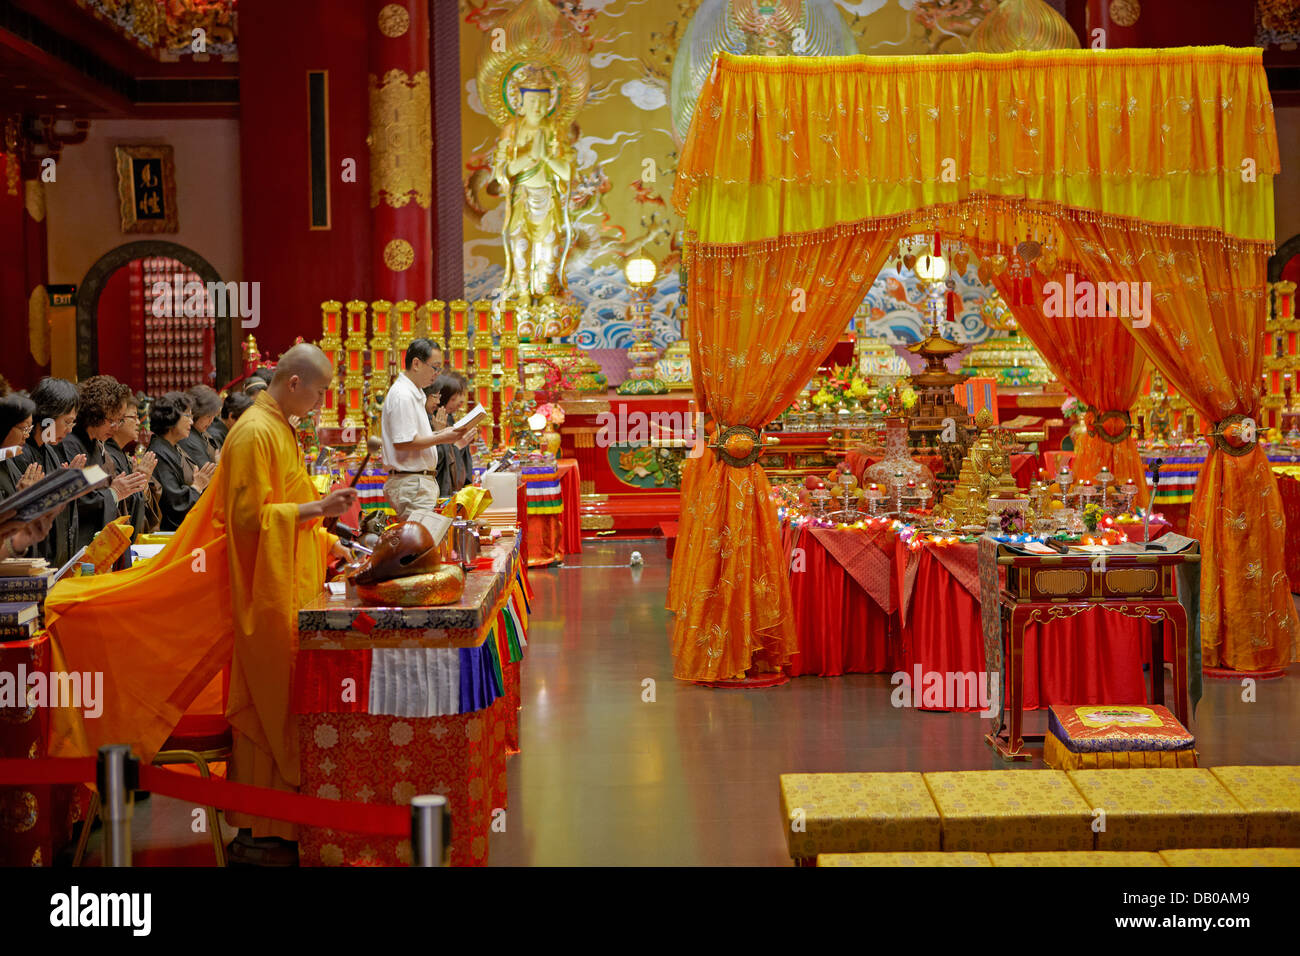 Buddhist ritual ceremony in Buddha Tooth Relic Temple. Chinatown, Singapore. Stock Photo